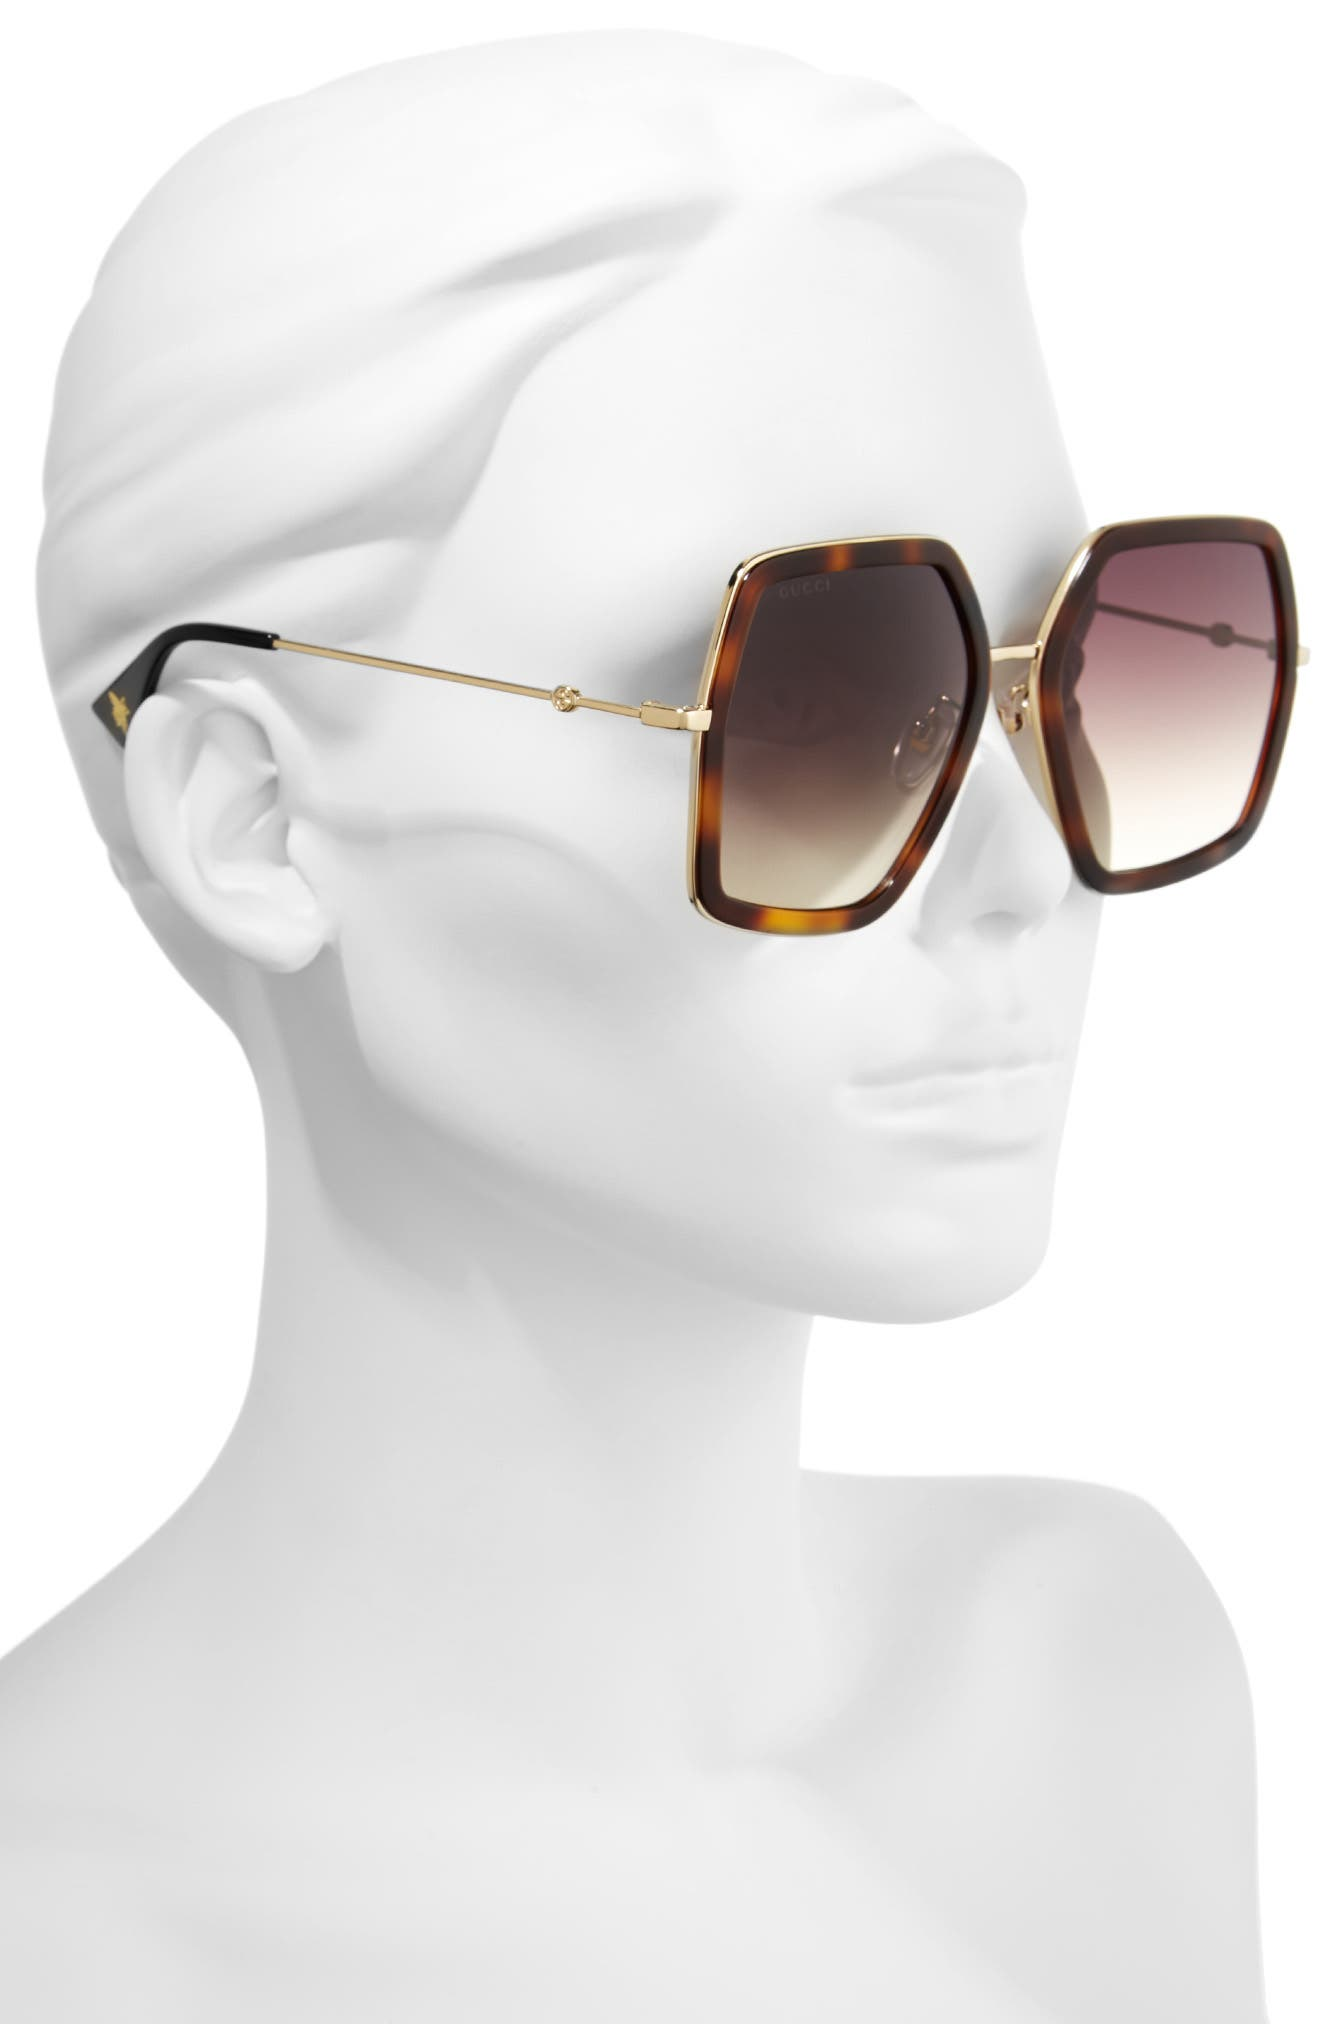 56mm Sunglasses,                             Alternate thumbnail 2, color,                             Havana/ Brown